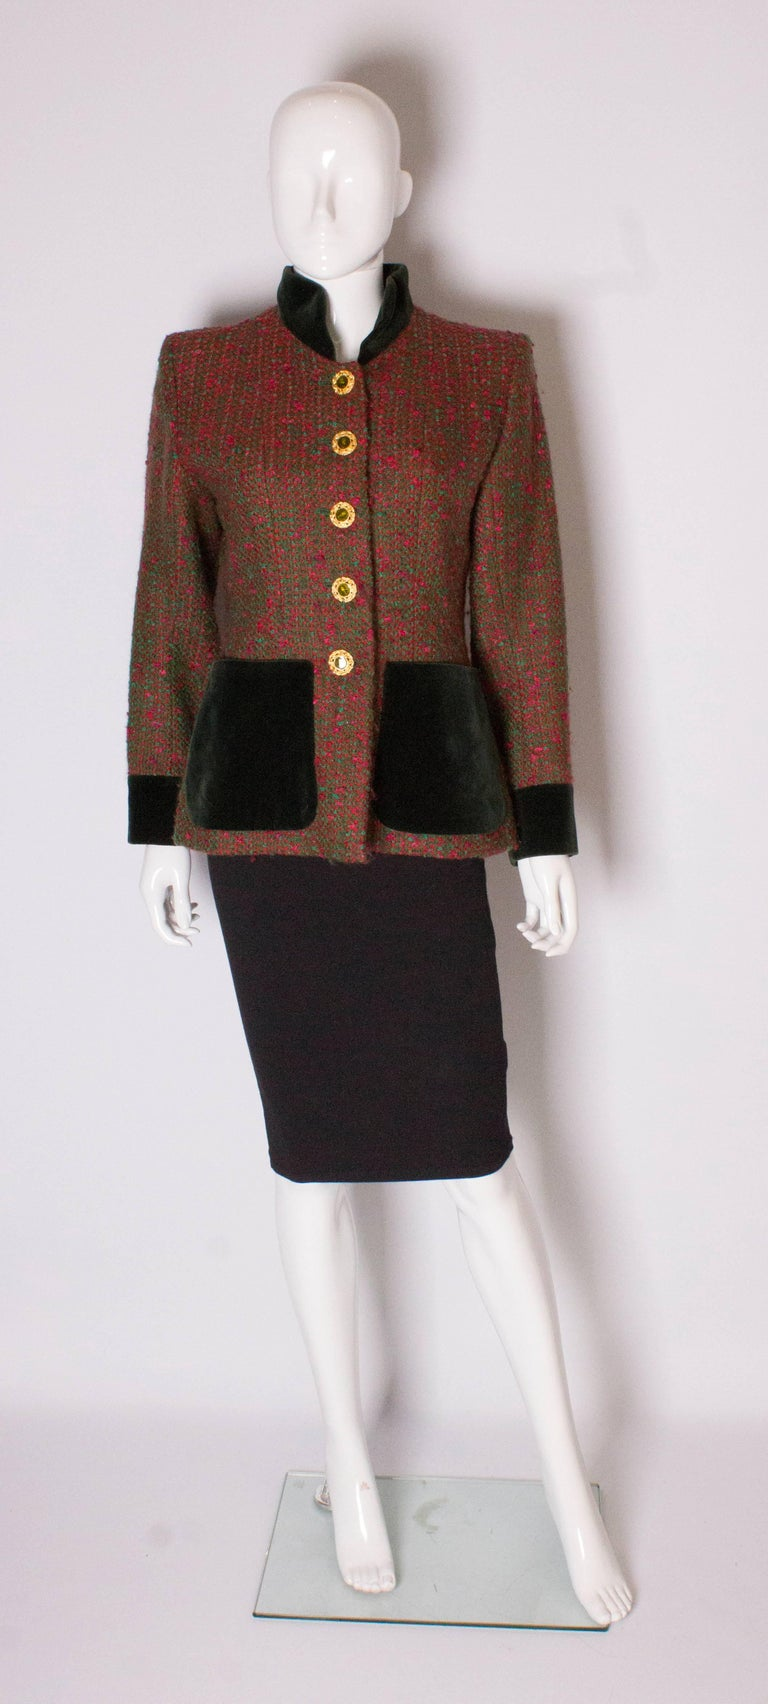 Vintage jacket by Yves Saint Laurent, Rive Gauche.The jacket is made of a red and green wool mix with a green velvet collar, cuffs and pockets. Size 40, with a 5 button front opening and green acetate lining.